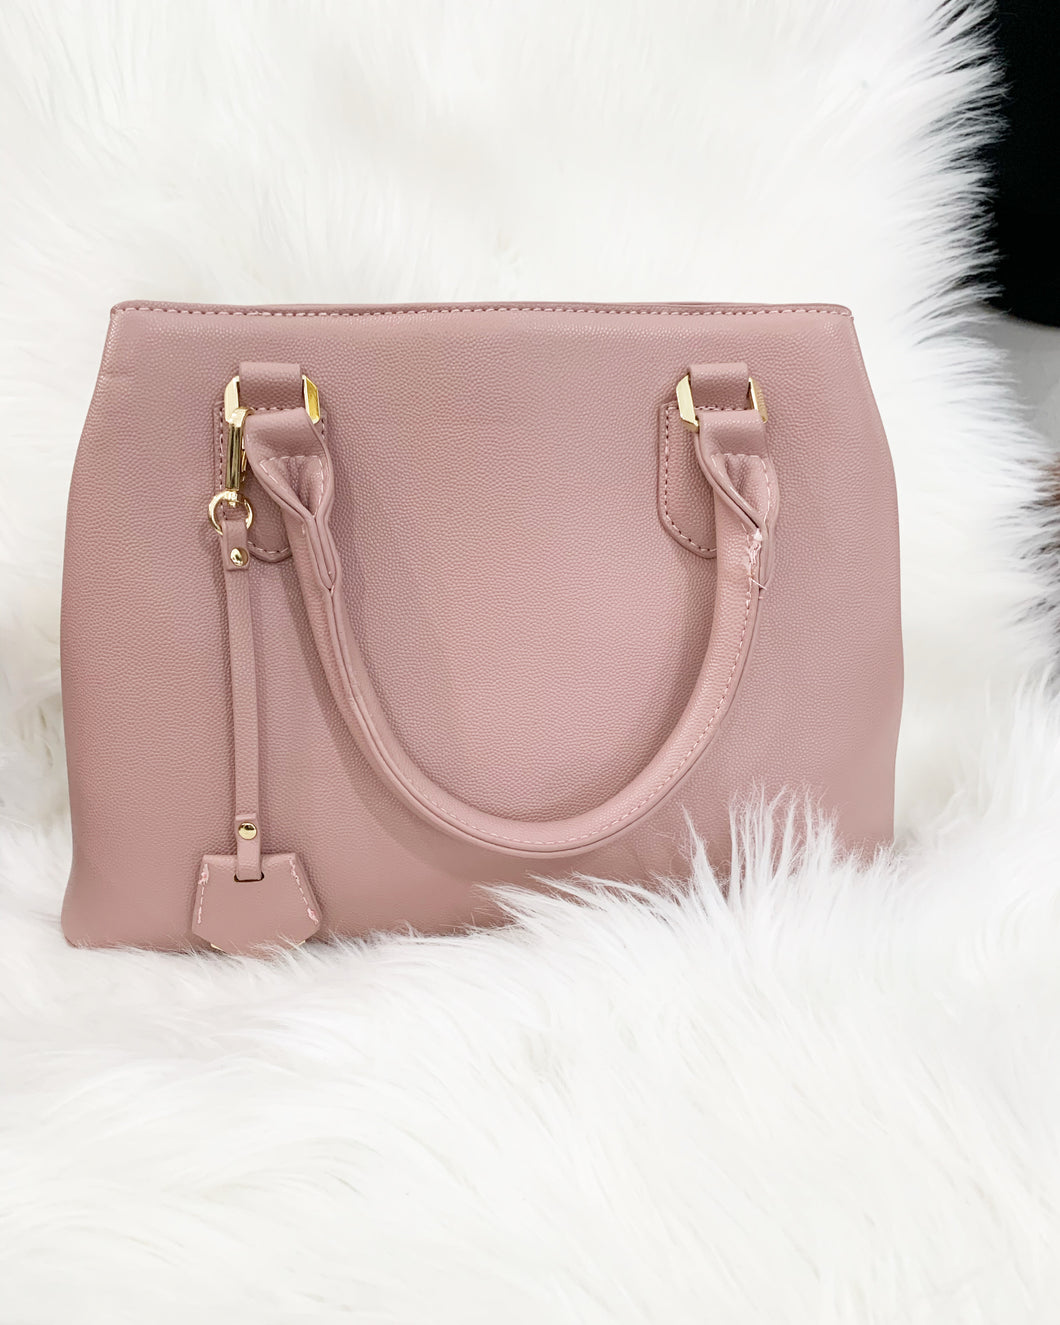 Chic Crossbody Handbag